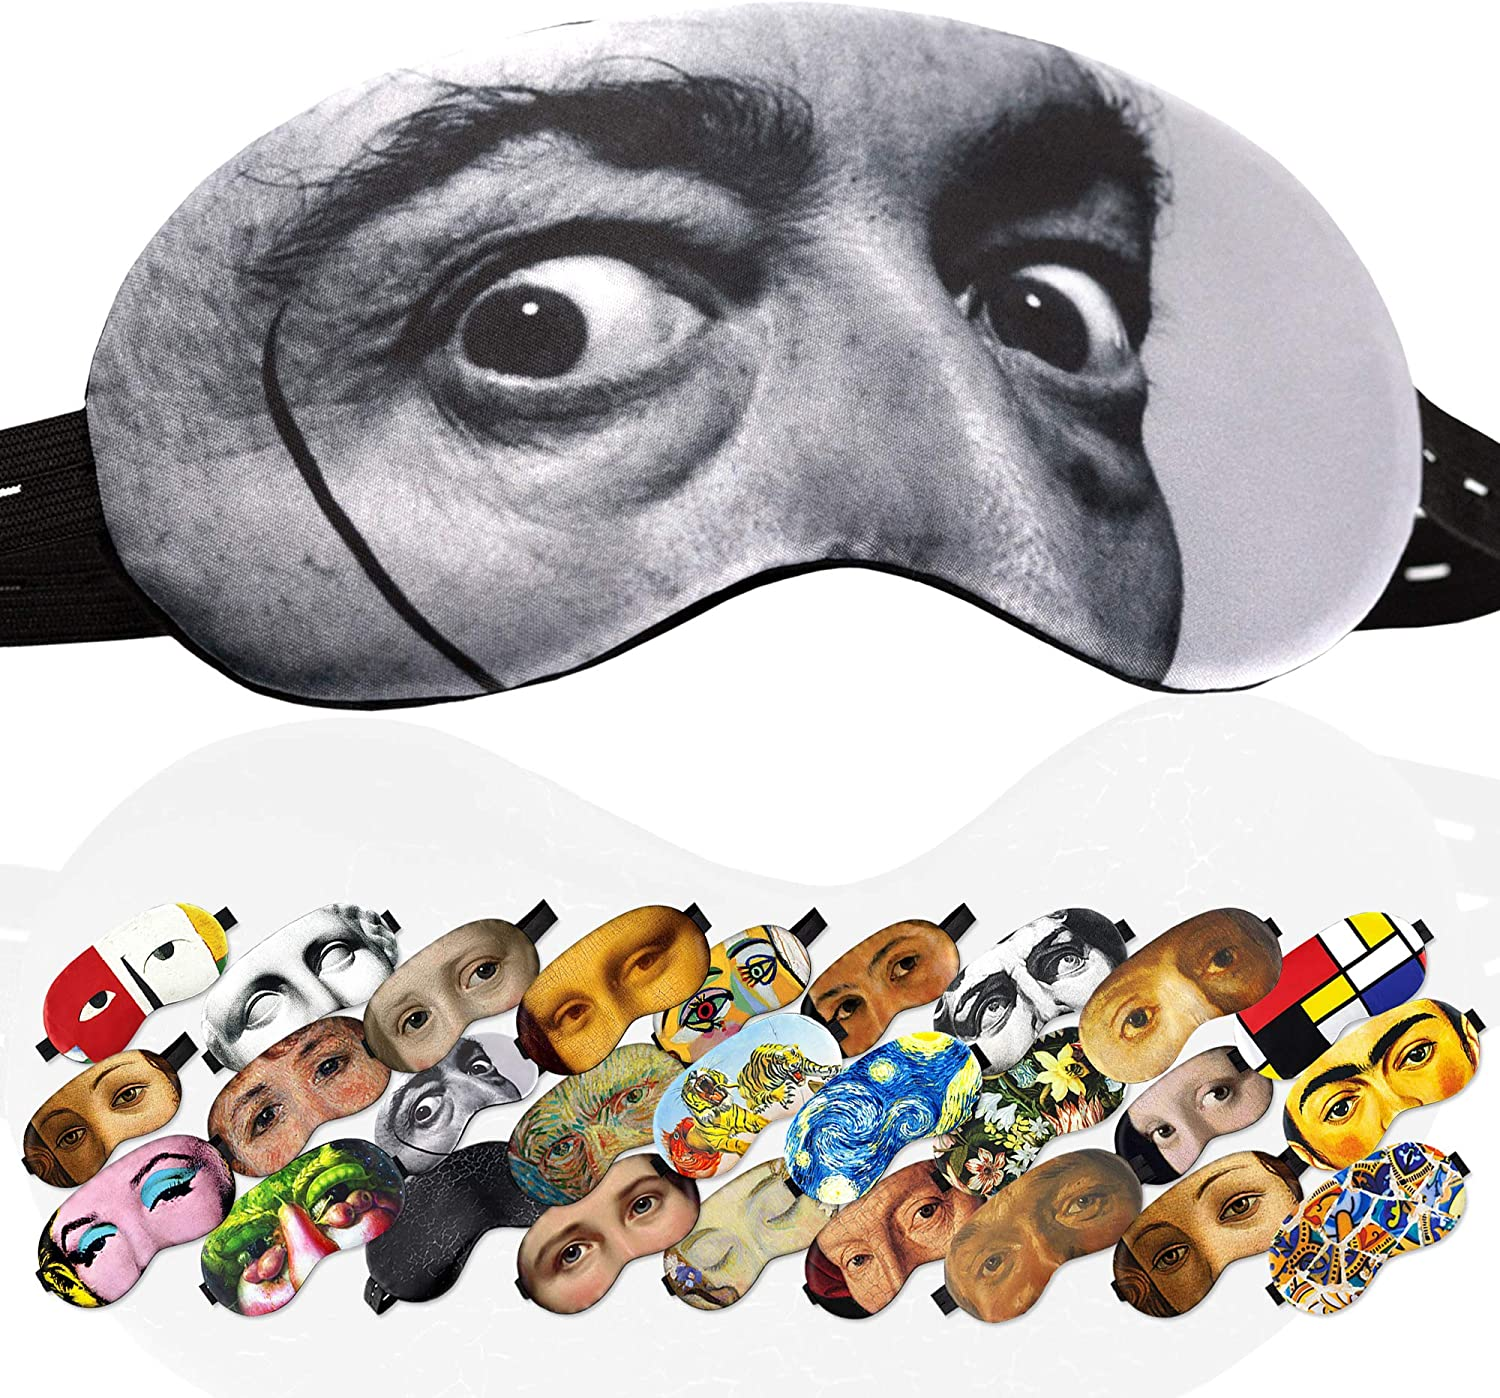 Sleep Mask for Men Masterpieses - 100% Soft Cotton - Comfortable Eye Sleeping Mask Night Cover Blindfoldfor Travel Airplane (Salvador DALI, Gift Pack)